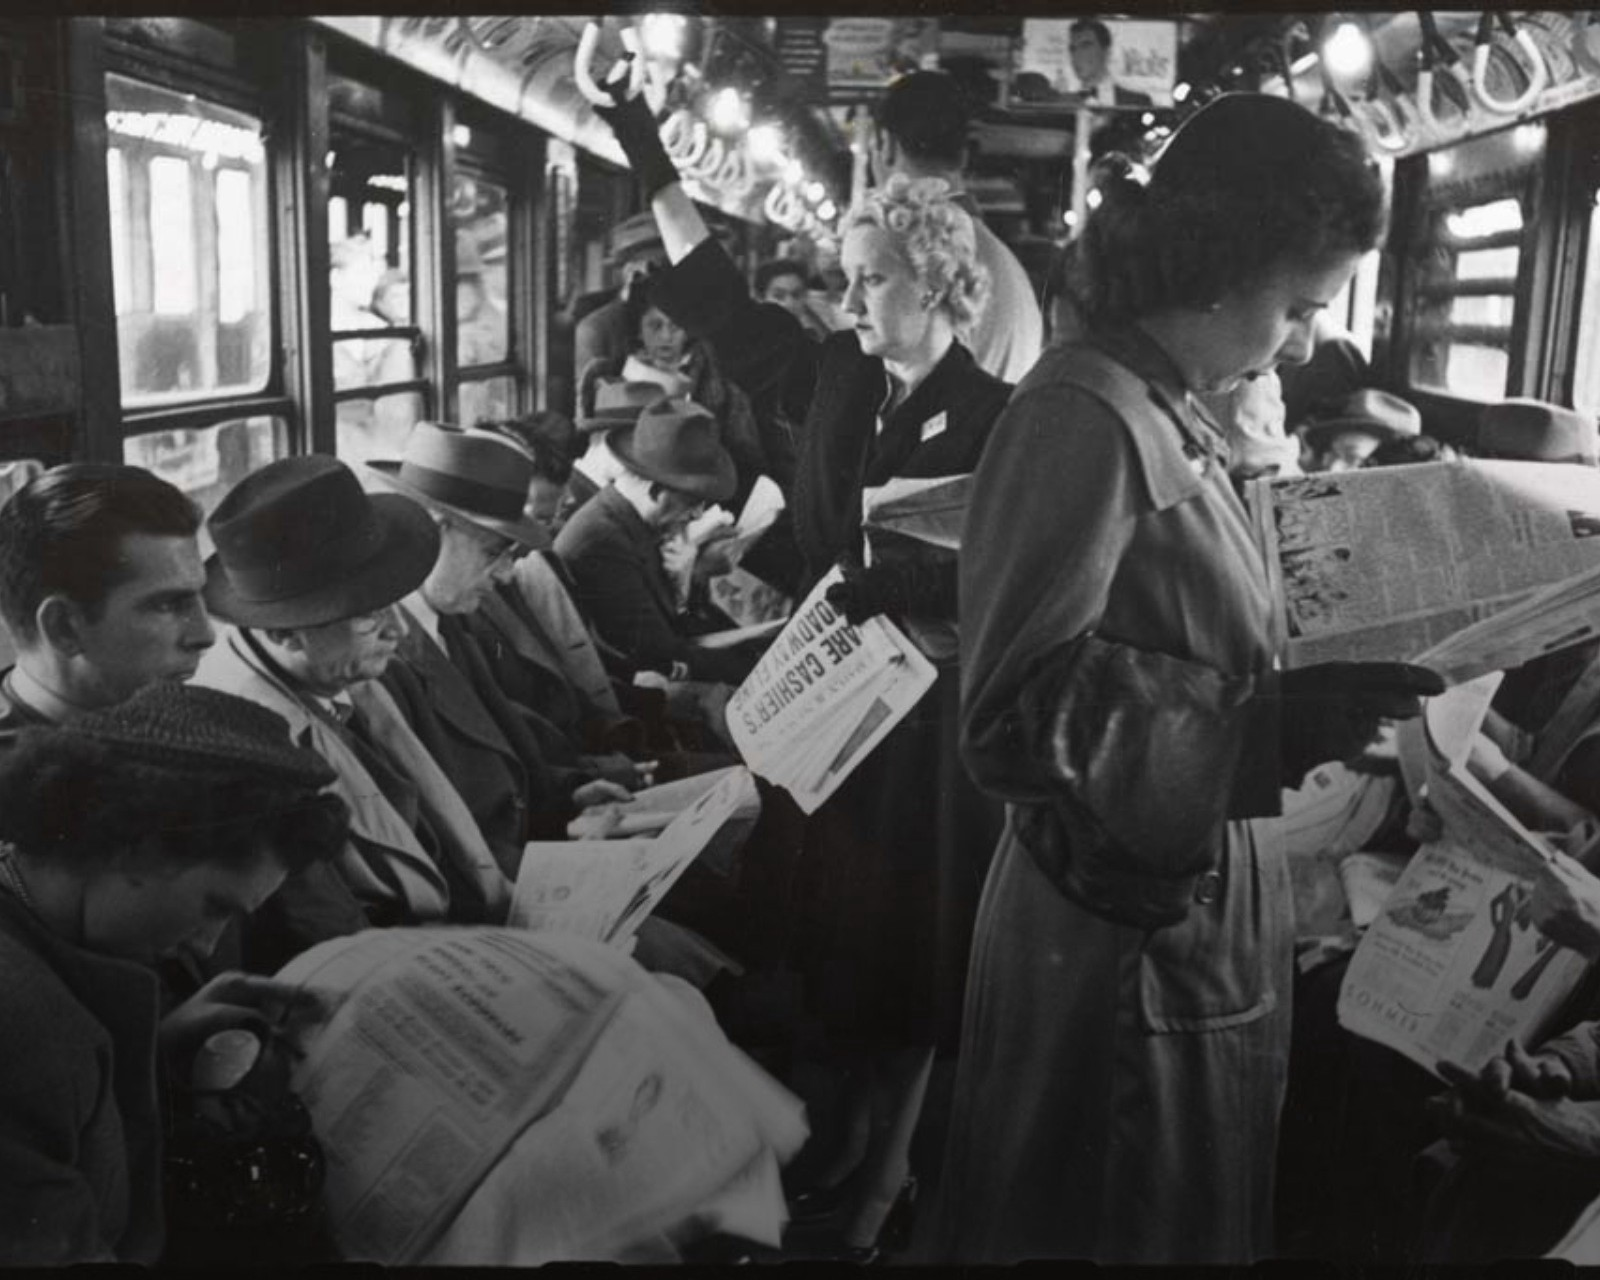 People Reading Newspaper